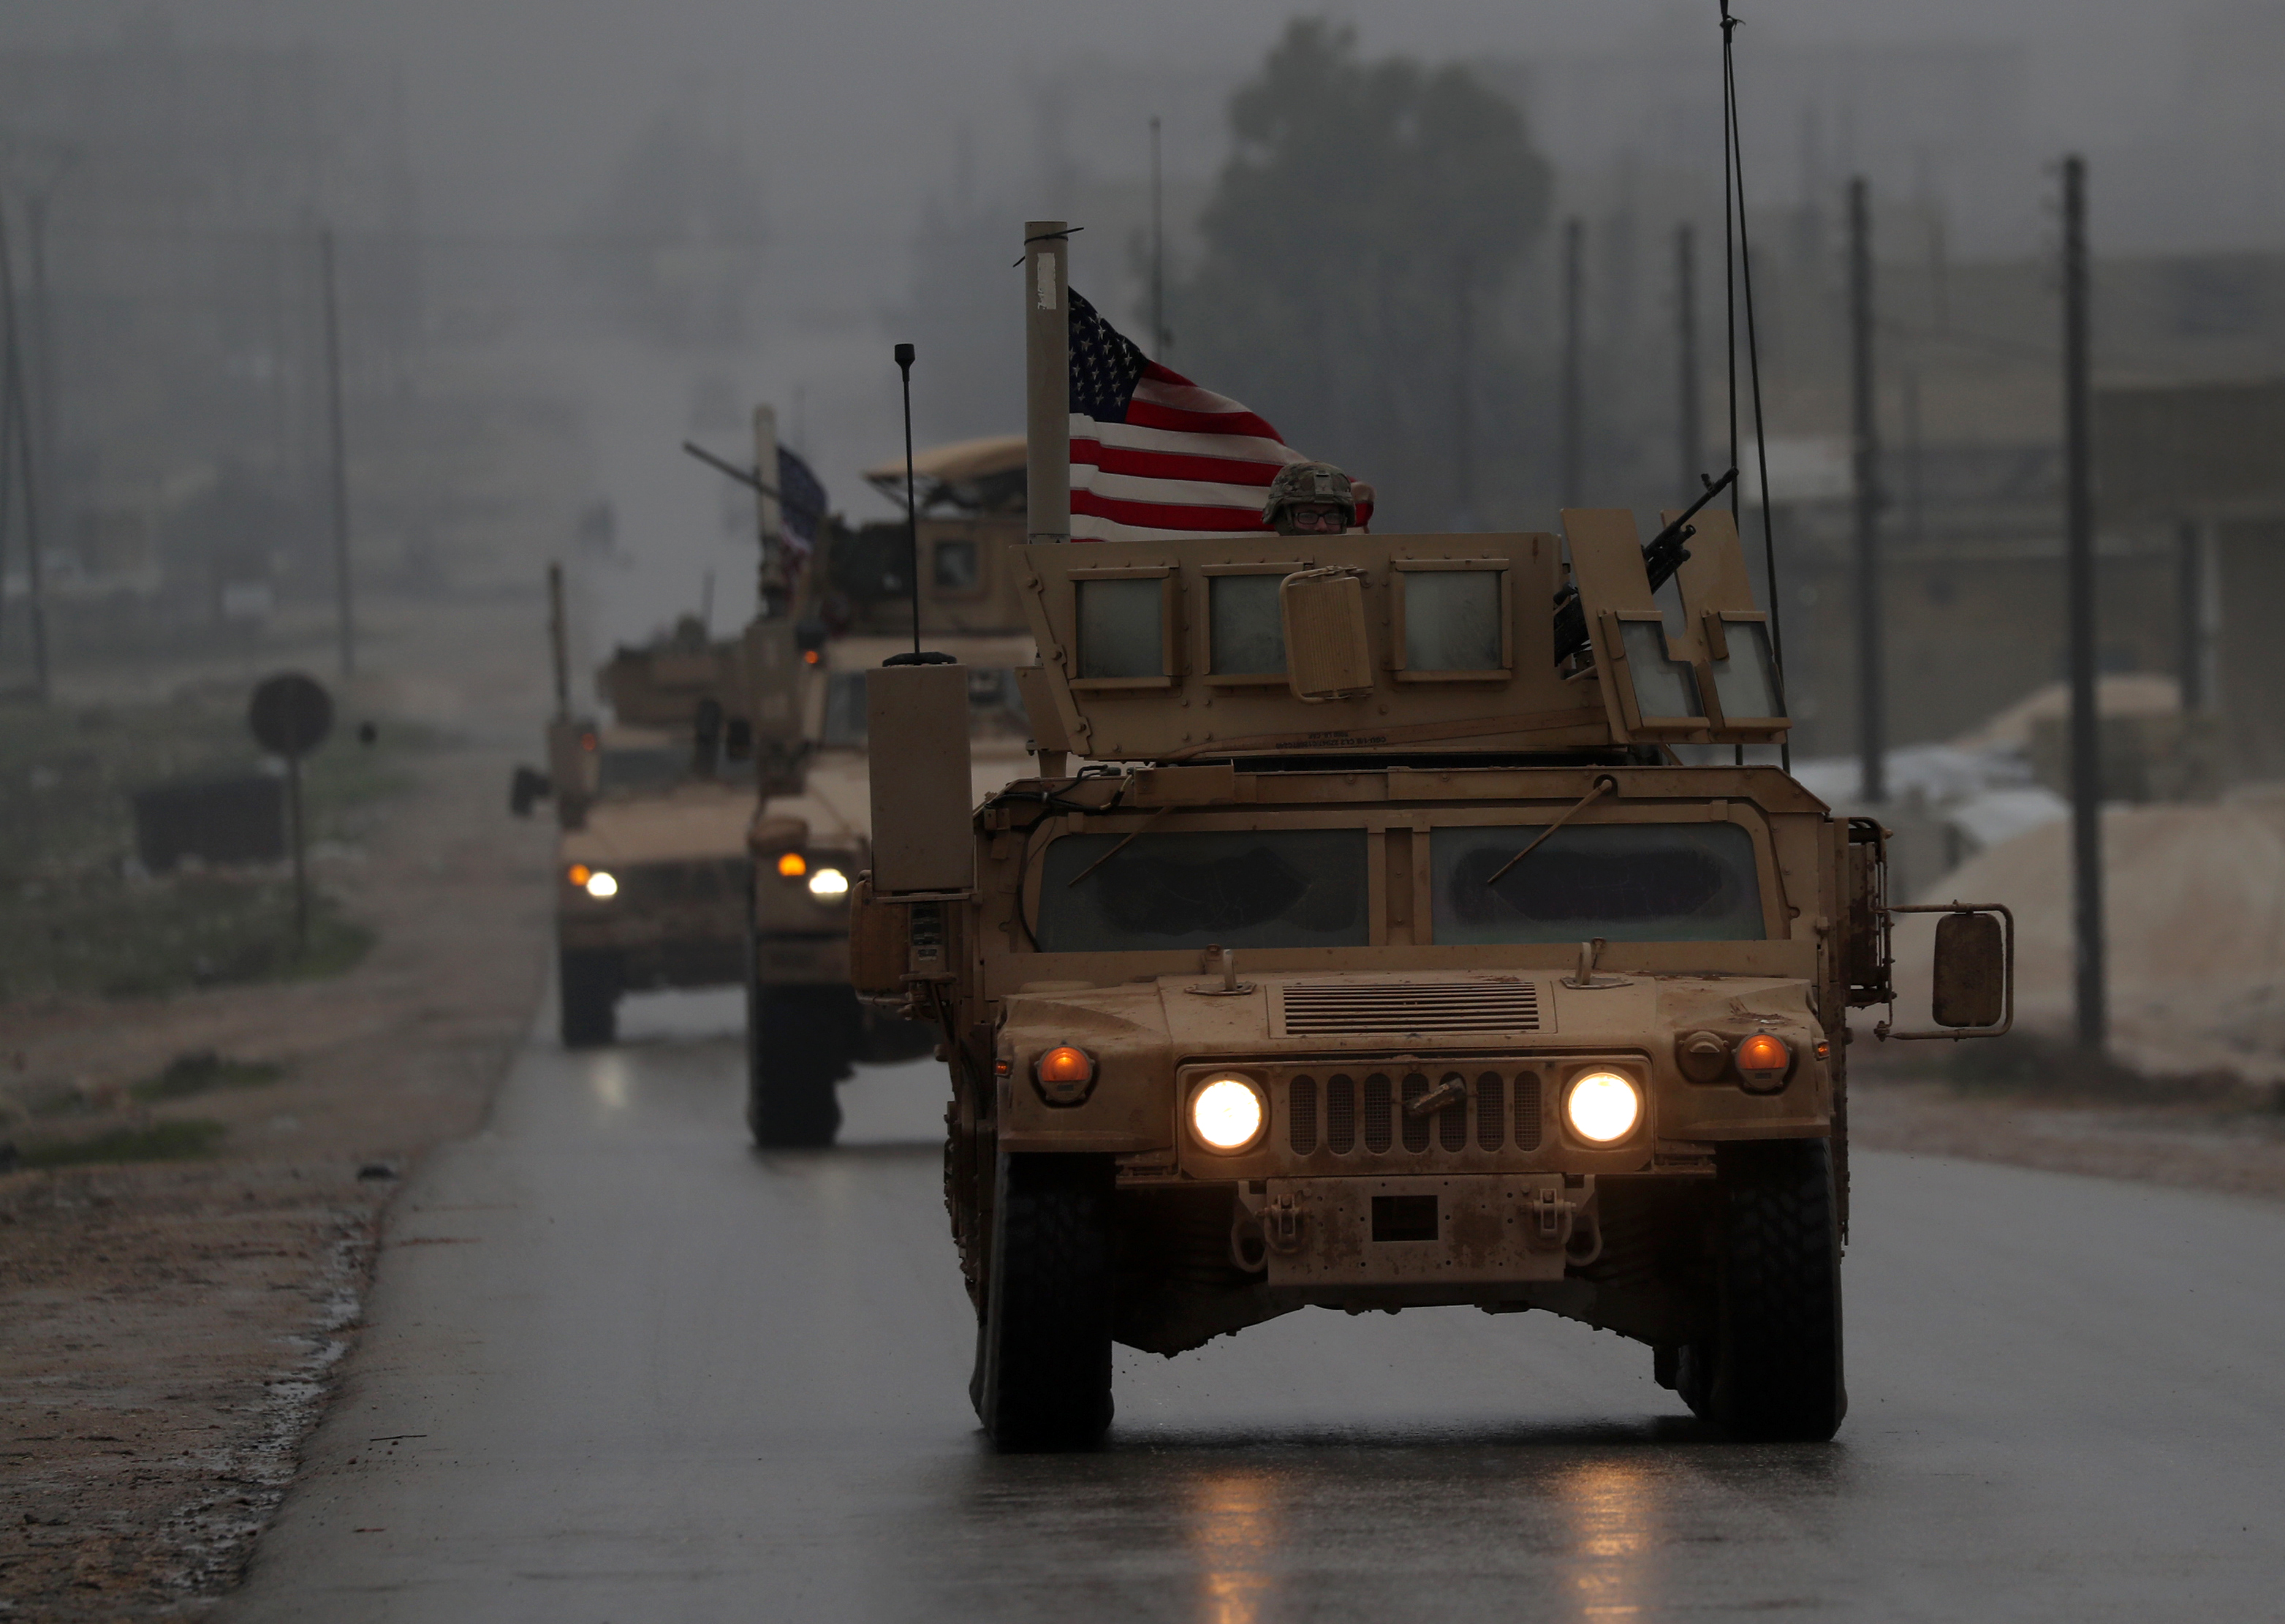 A line of US military vehicles is seen Dec. 30, 2018, in Syria's northern city of Manbij. (Delil Souleiman/AFP via Getty Images)